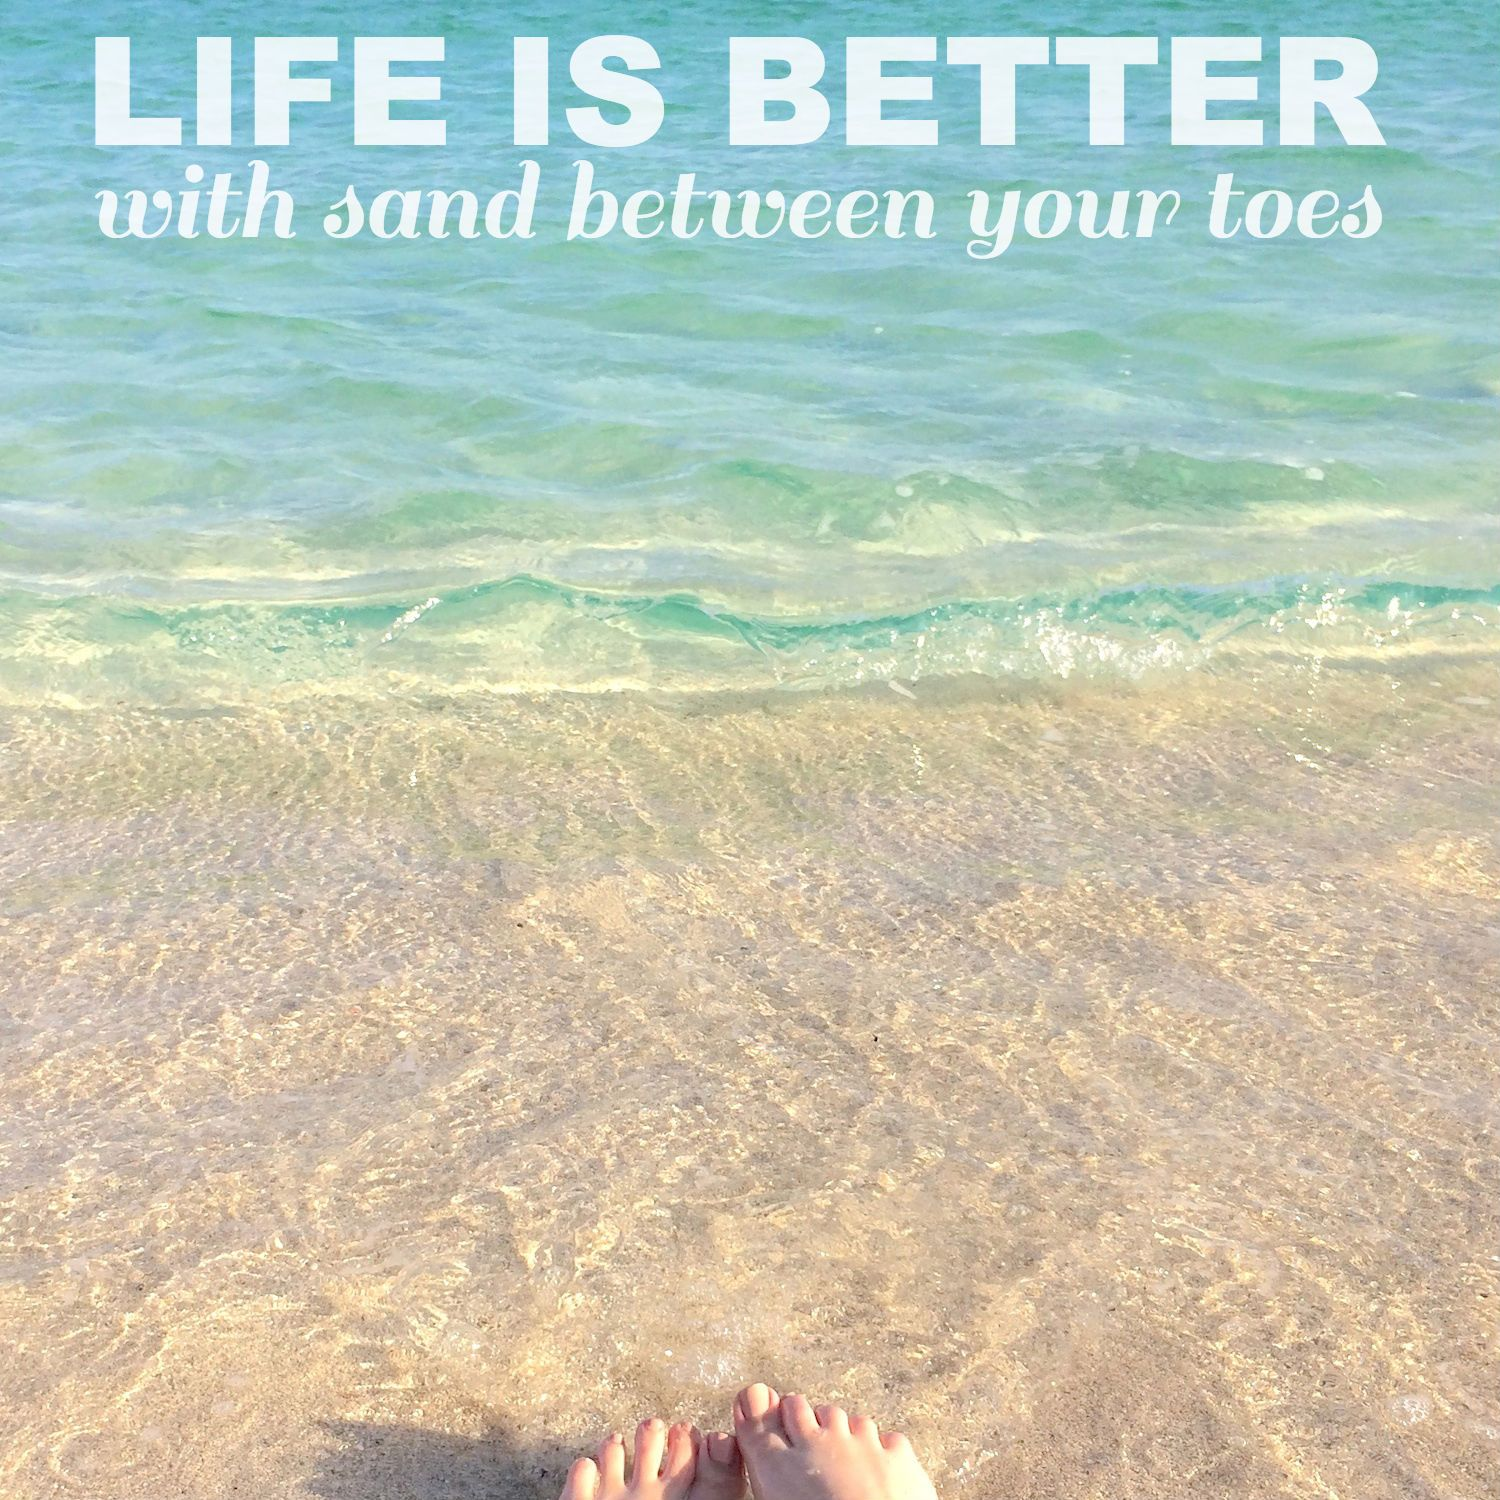 Beach Life Quotes Life Is Better With Sand Between Your Toesbeach Life Quotes